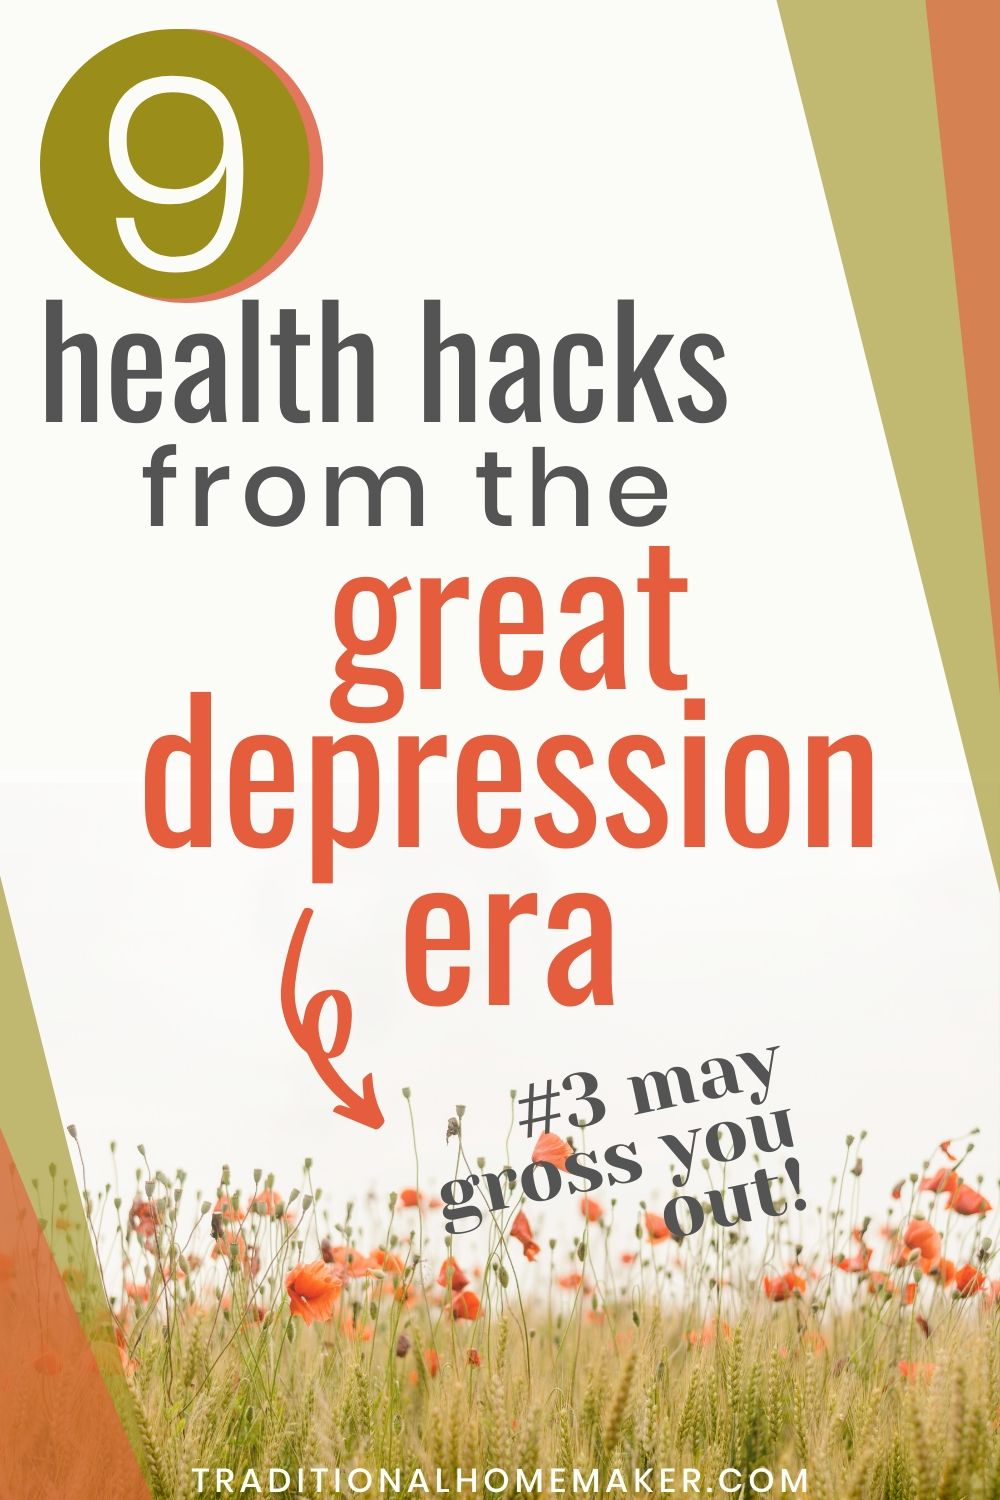 Learn about some common health hacks from the Great Depression Era! With common household supplies you can ease pain and make your own remedies in no time!